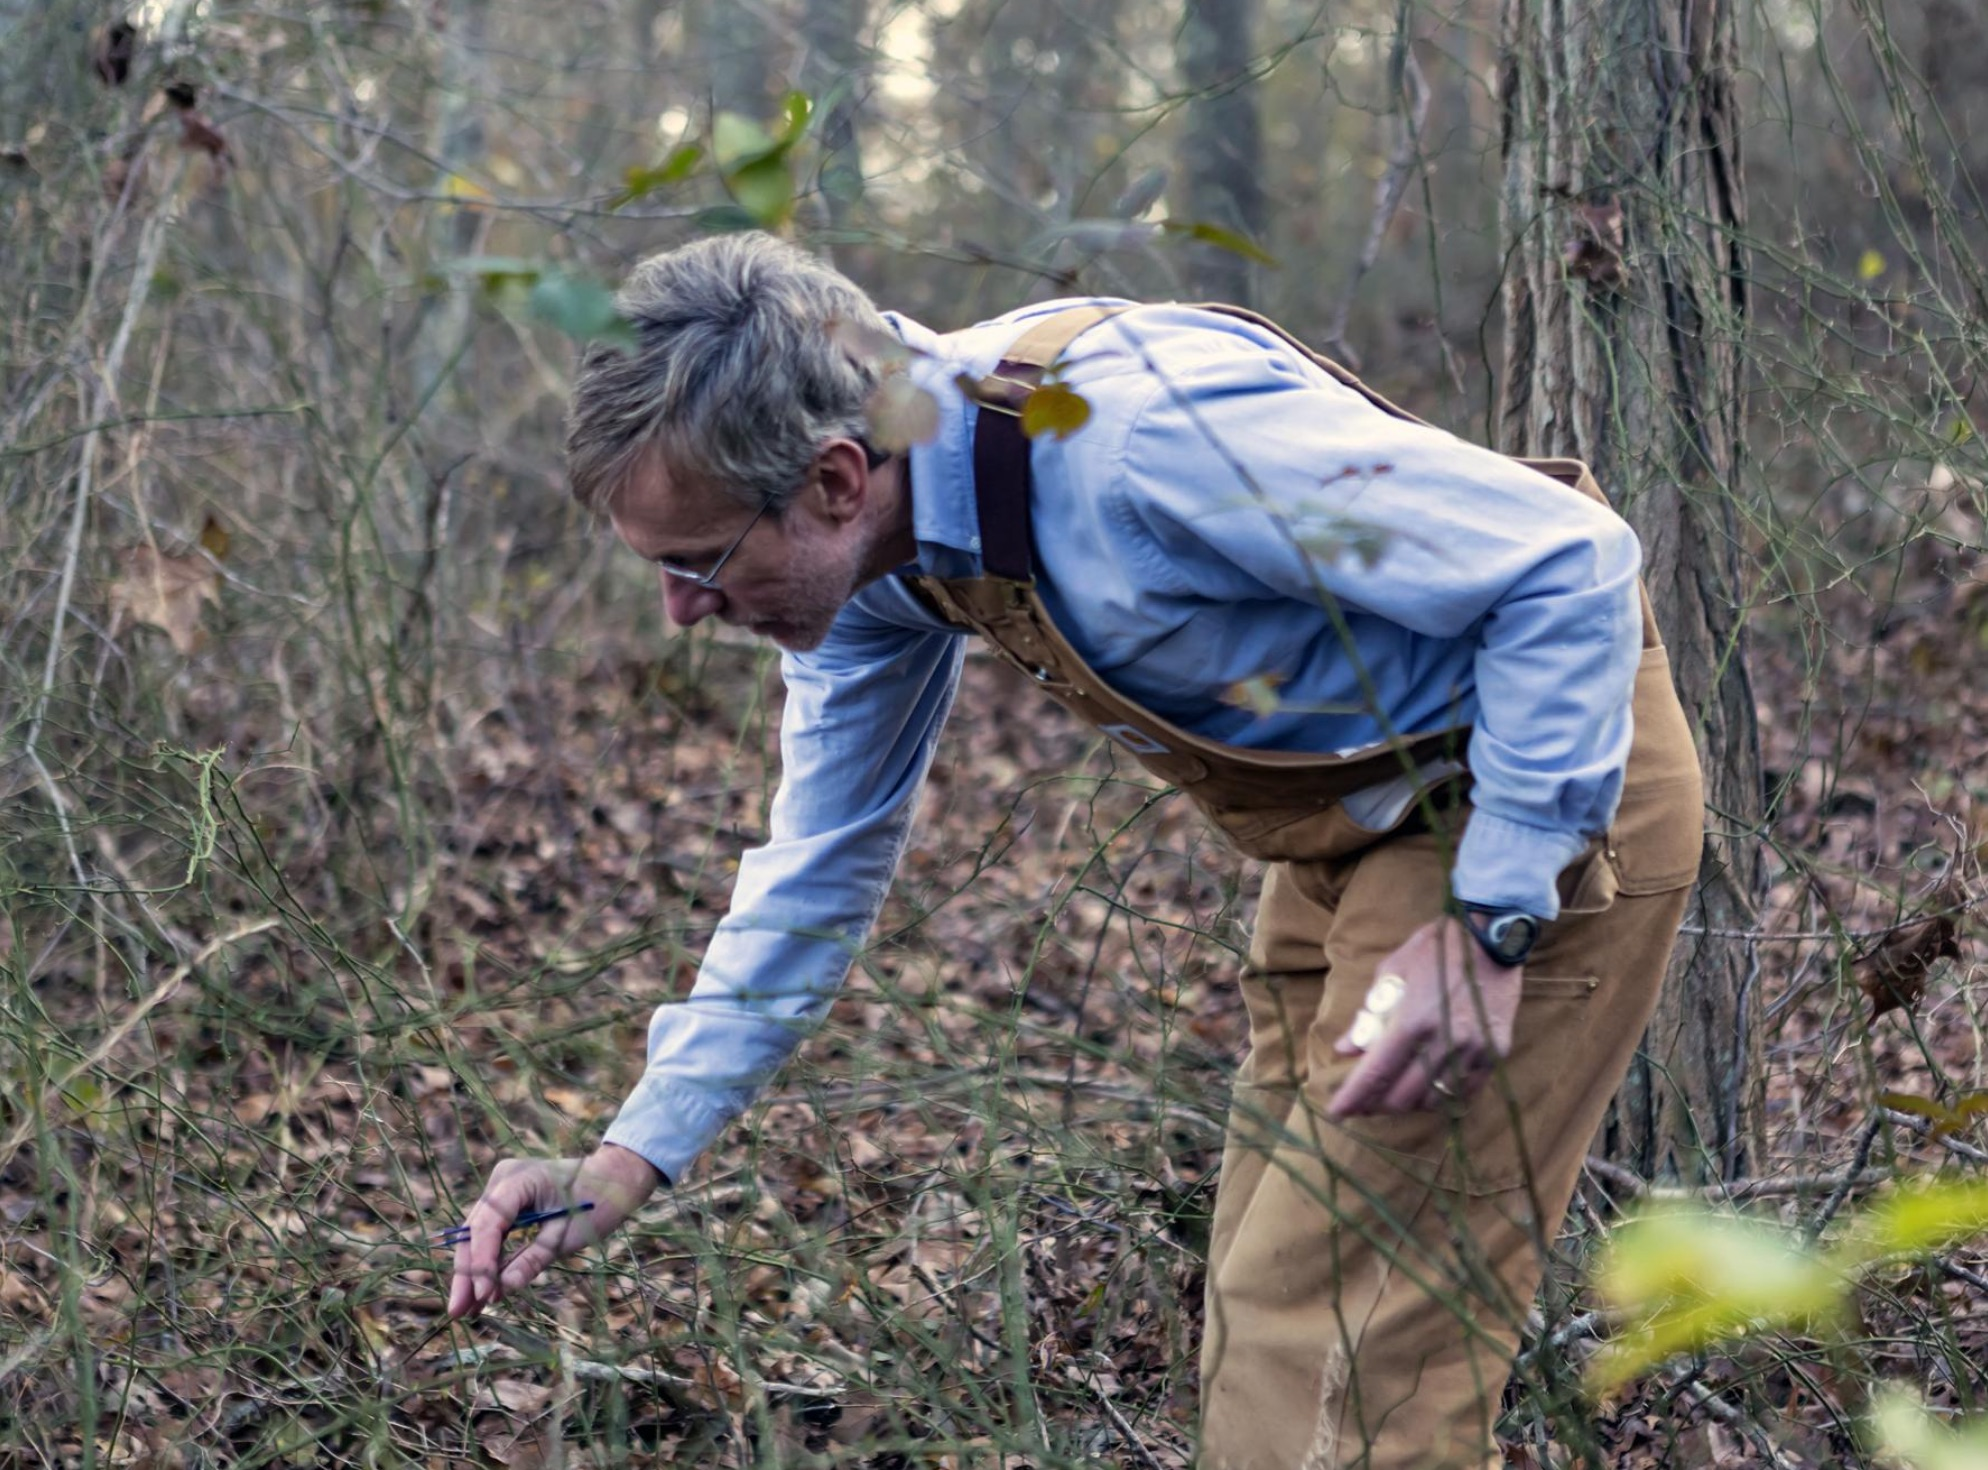 Tom Mather, gathering ticks for testing.  He can spot those buggers on the ends of branches where they wait to latch on.  Remember: CHECK YOURSELF and your dog every day!